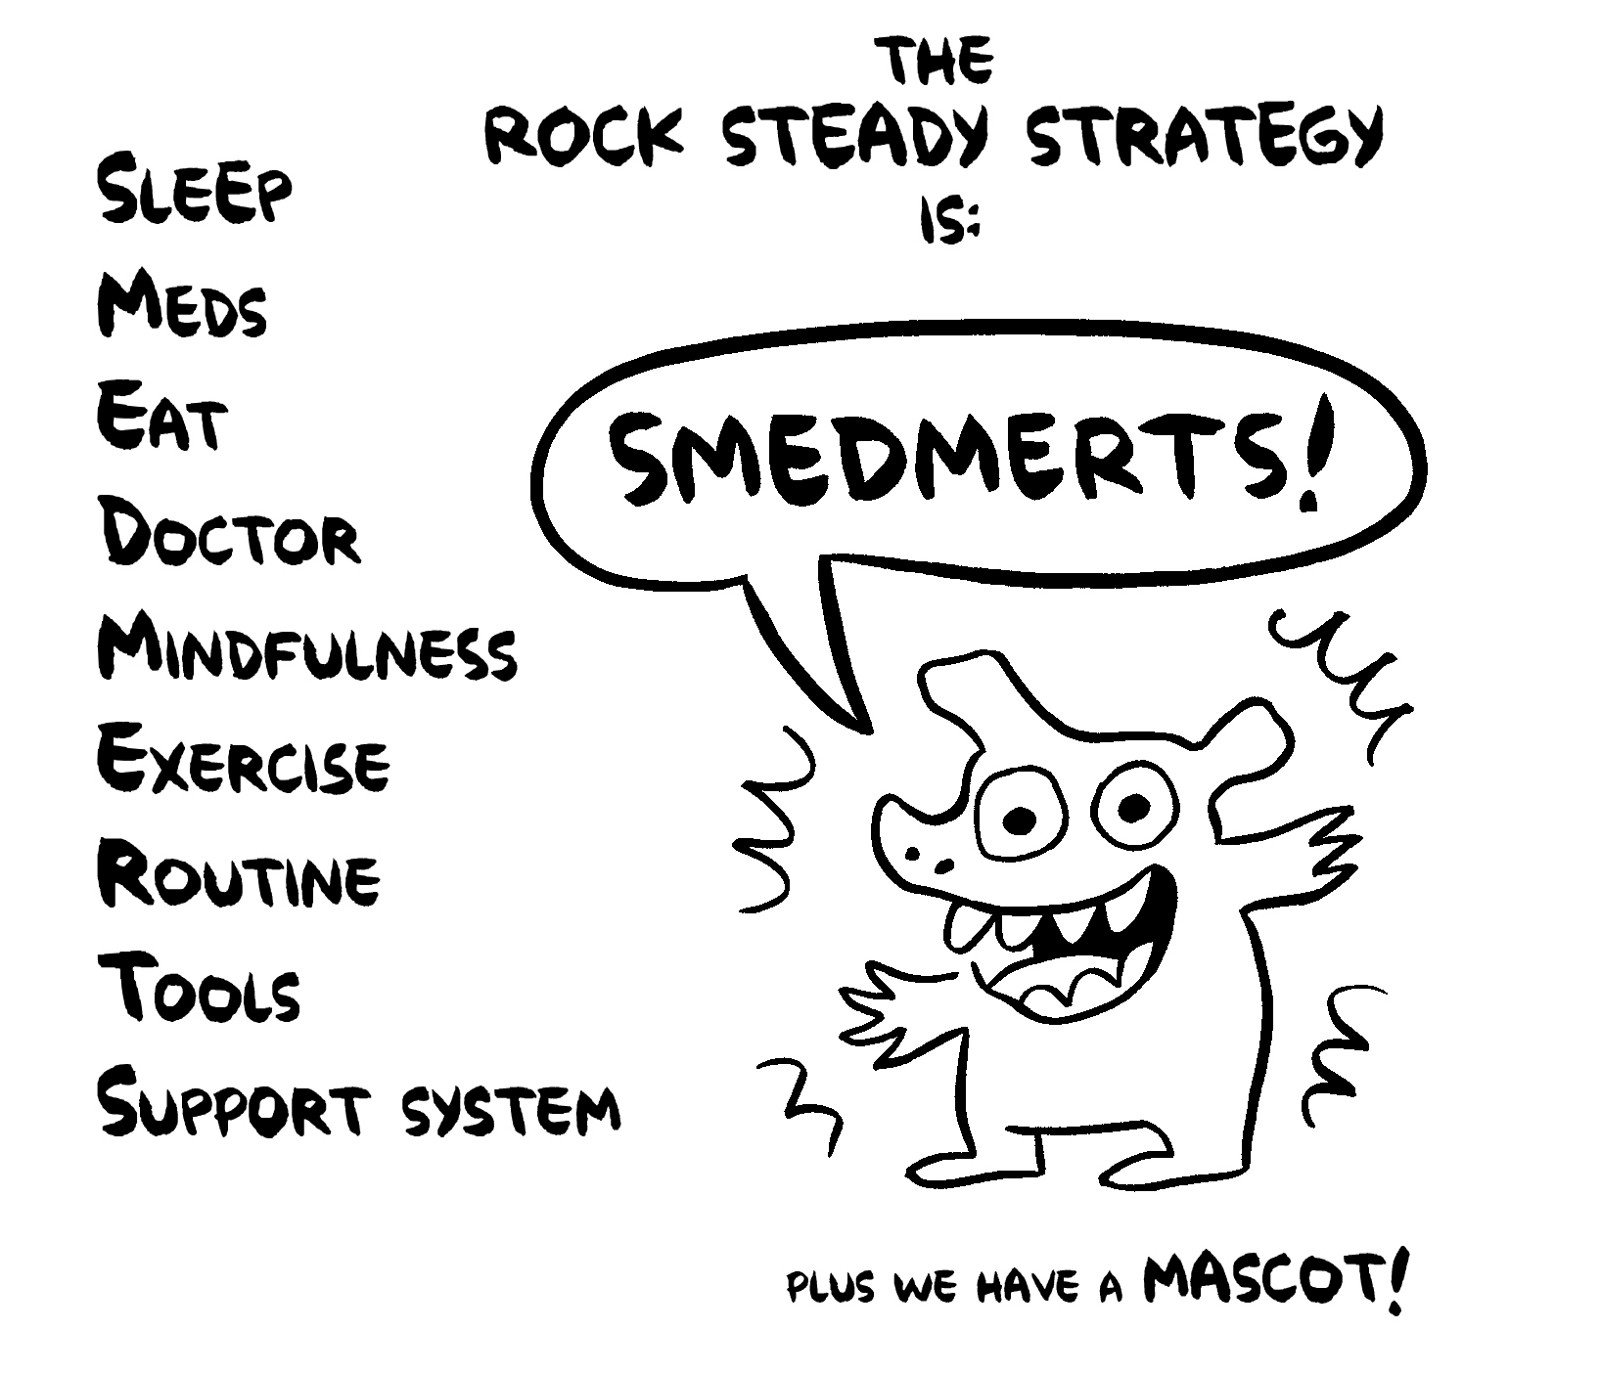 The rock steady strategy is SMEDMERTS plus we have a mascot